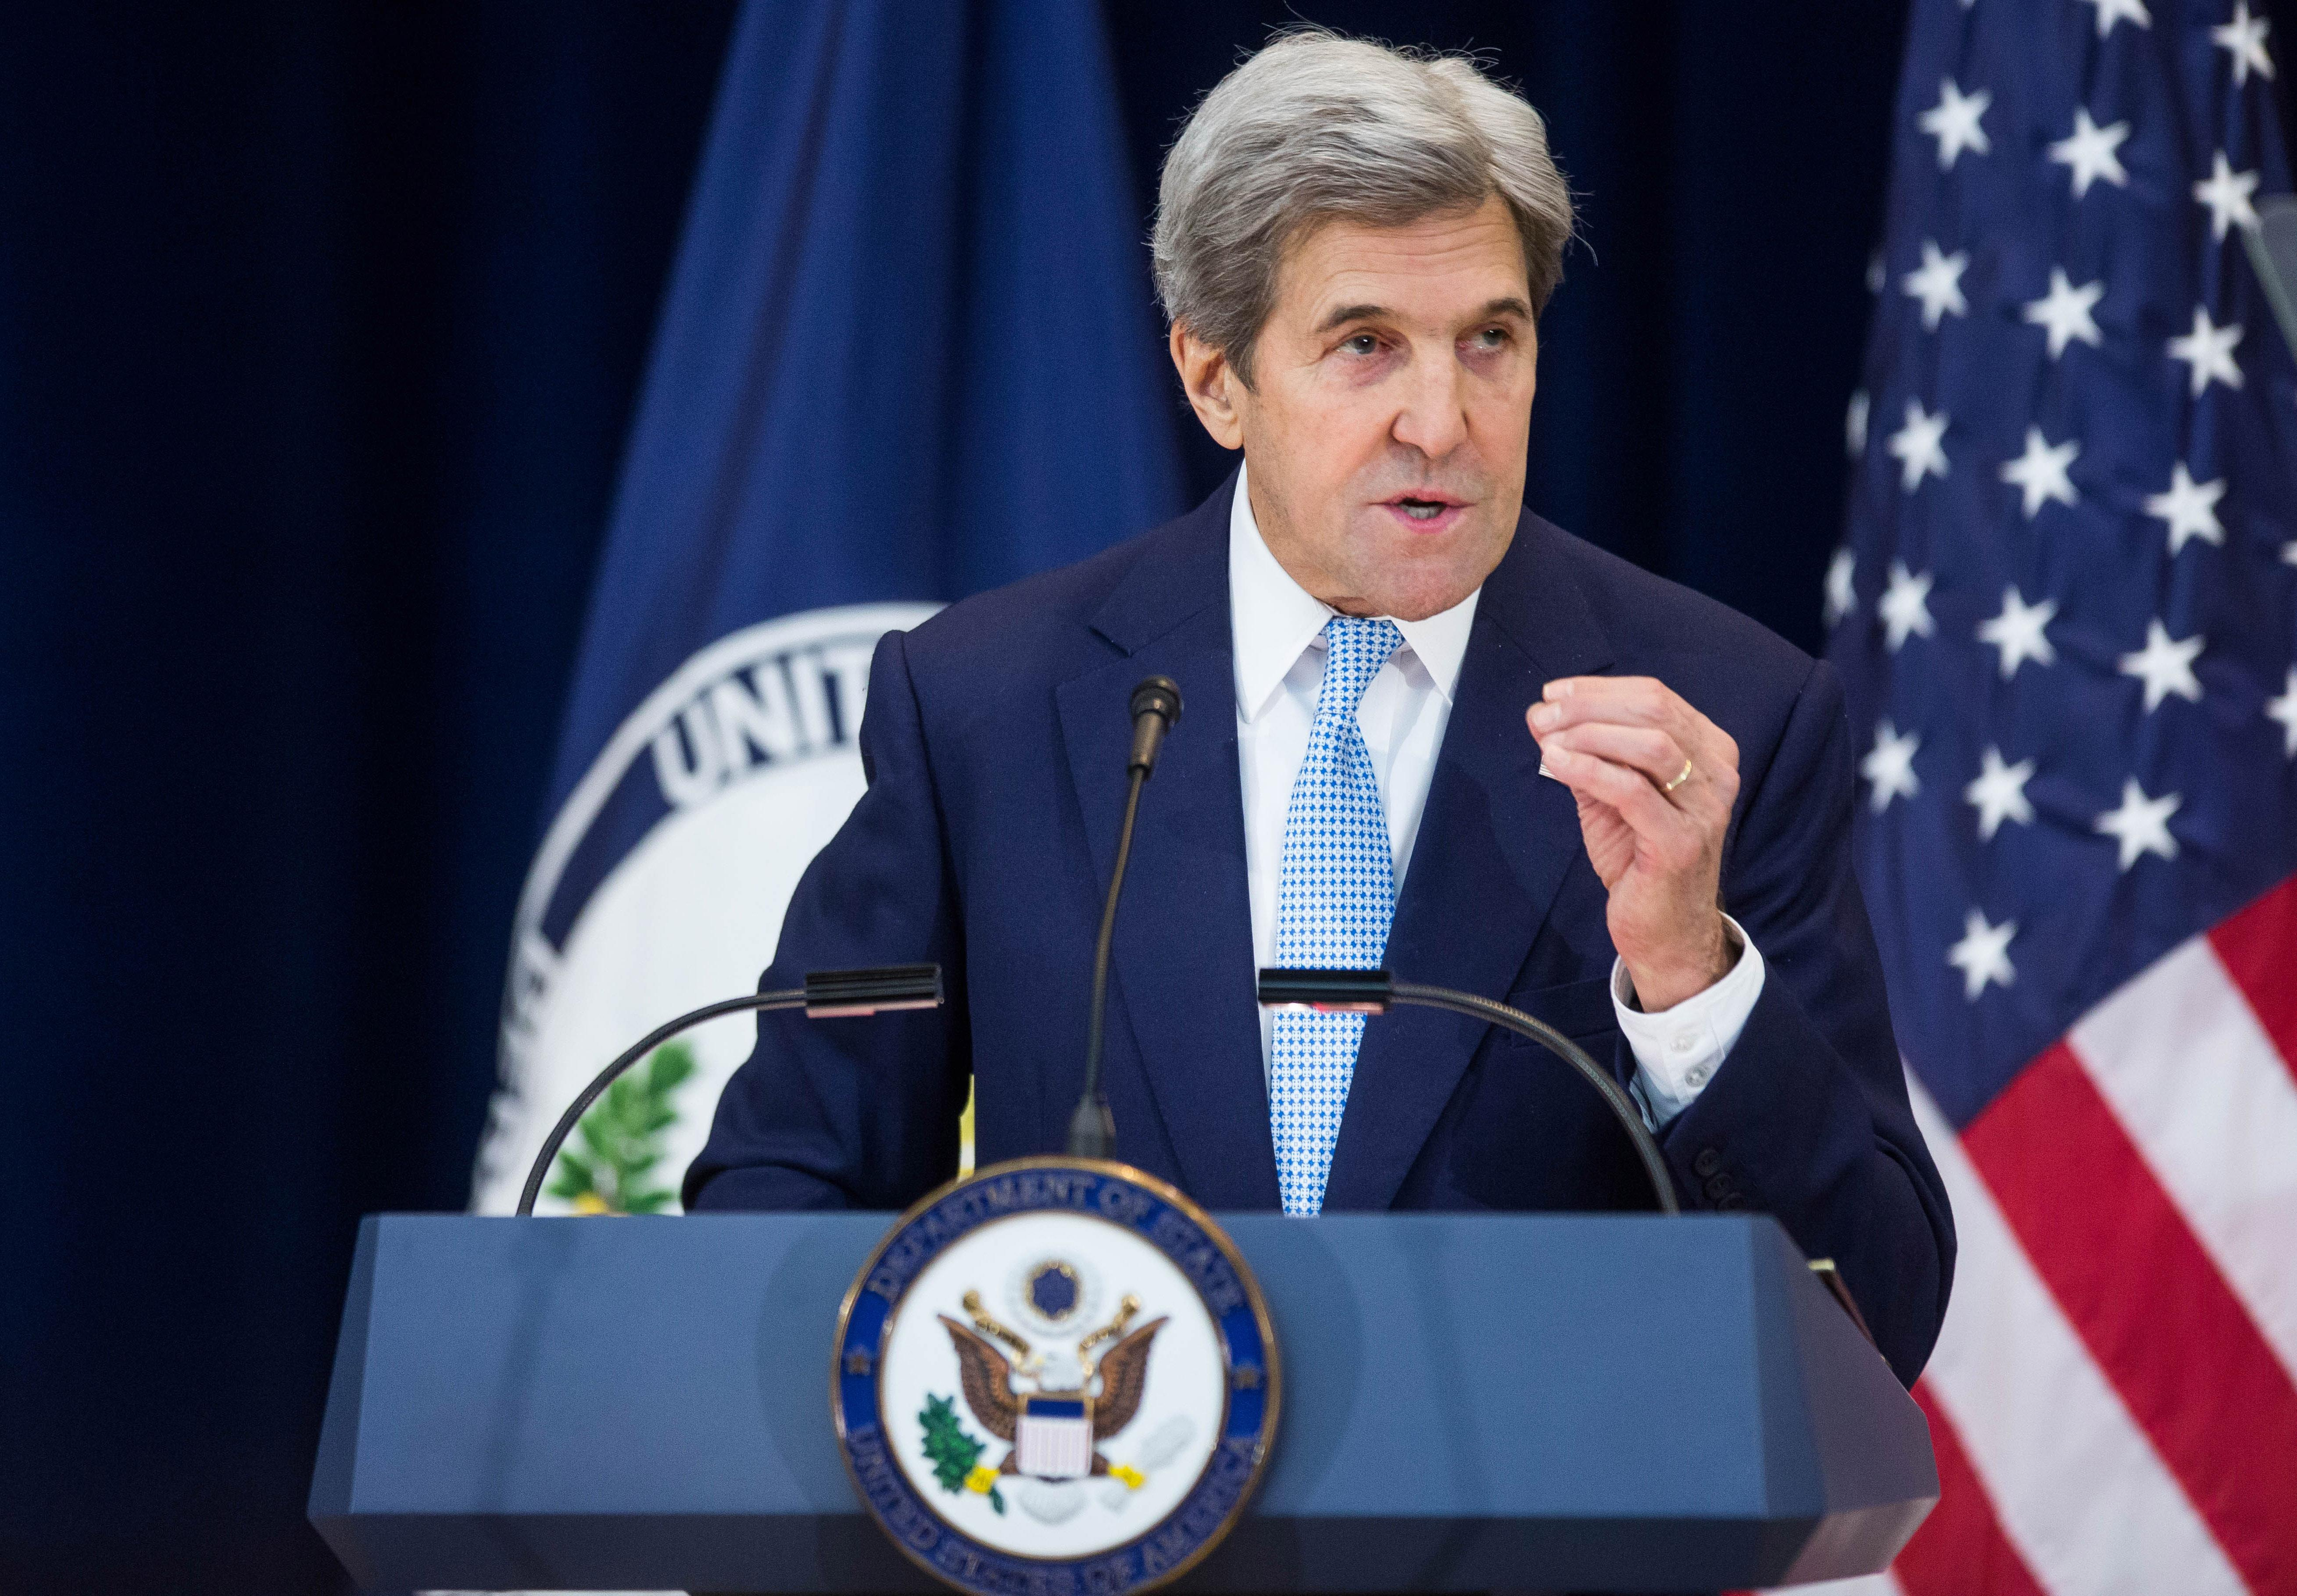 Kerry Addresses Controversial UN Vote